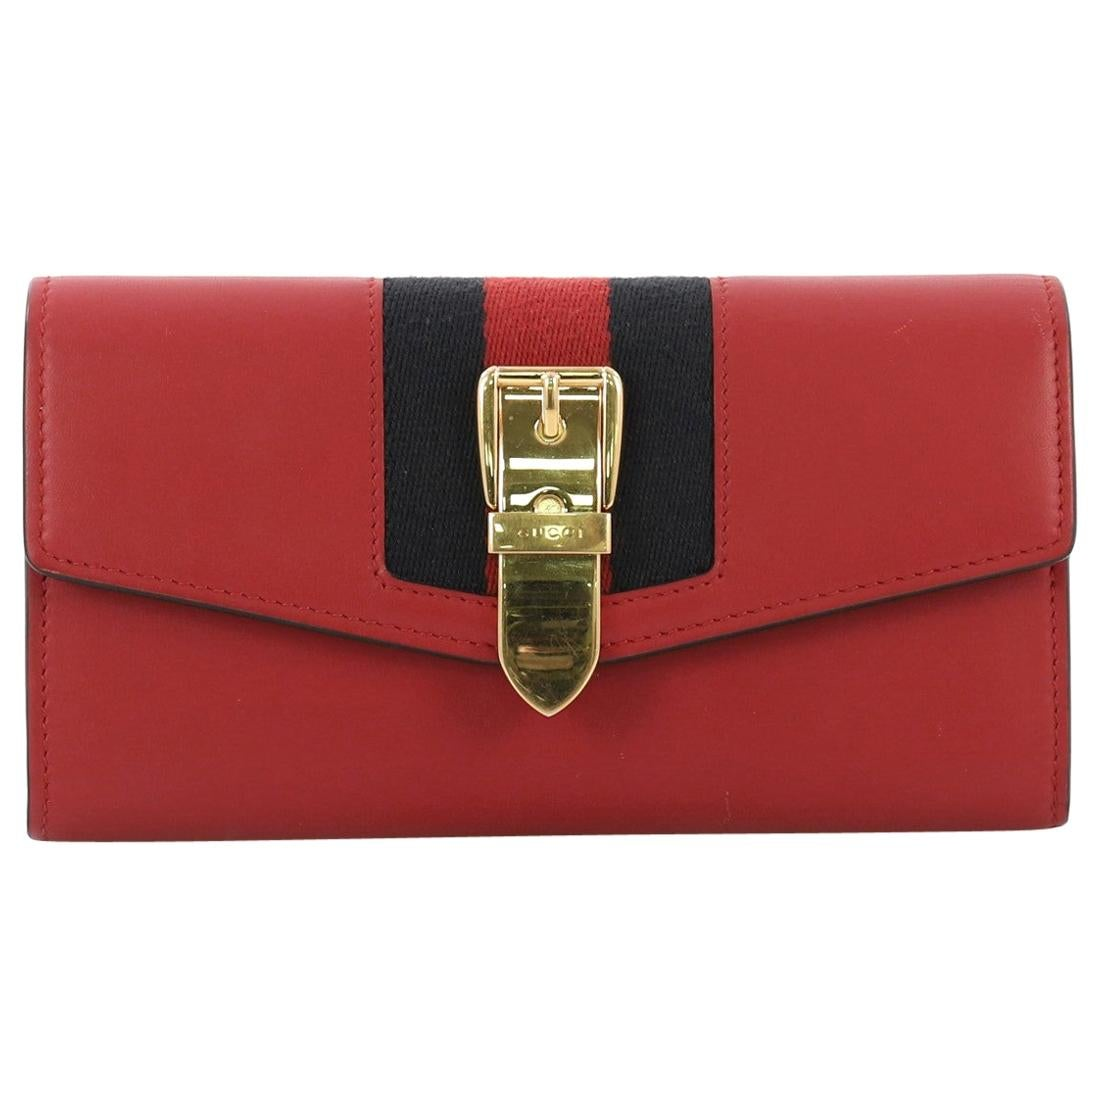 66c308917e87 Vintage Gucci Handbags and Purses - 2,046 For Sale at 1stdibs